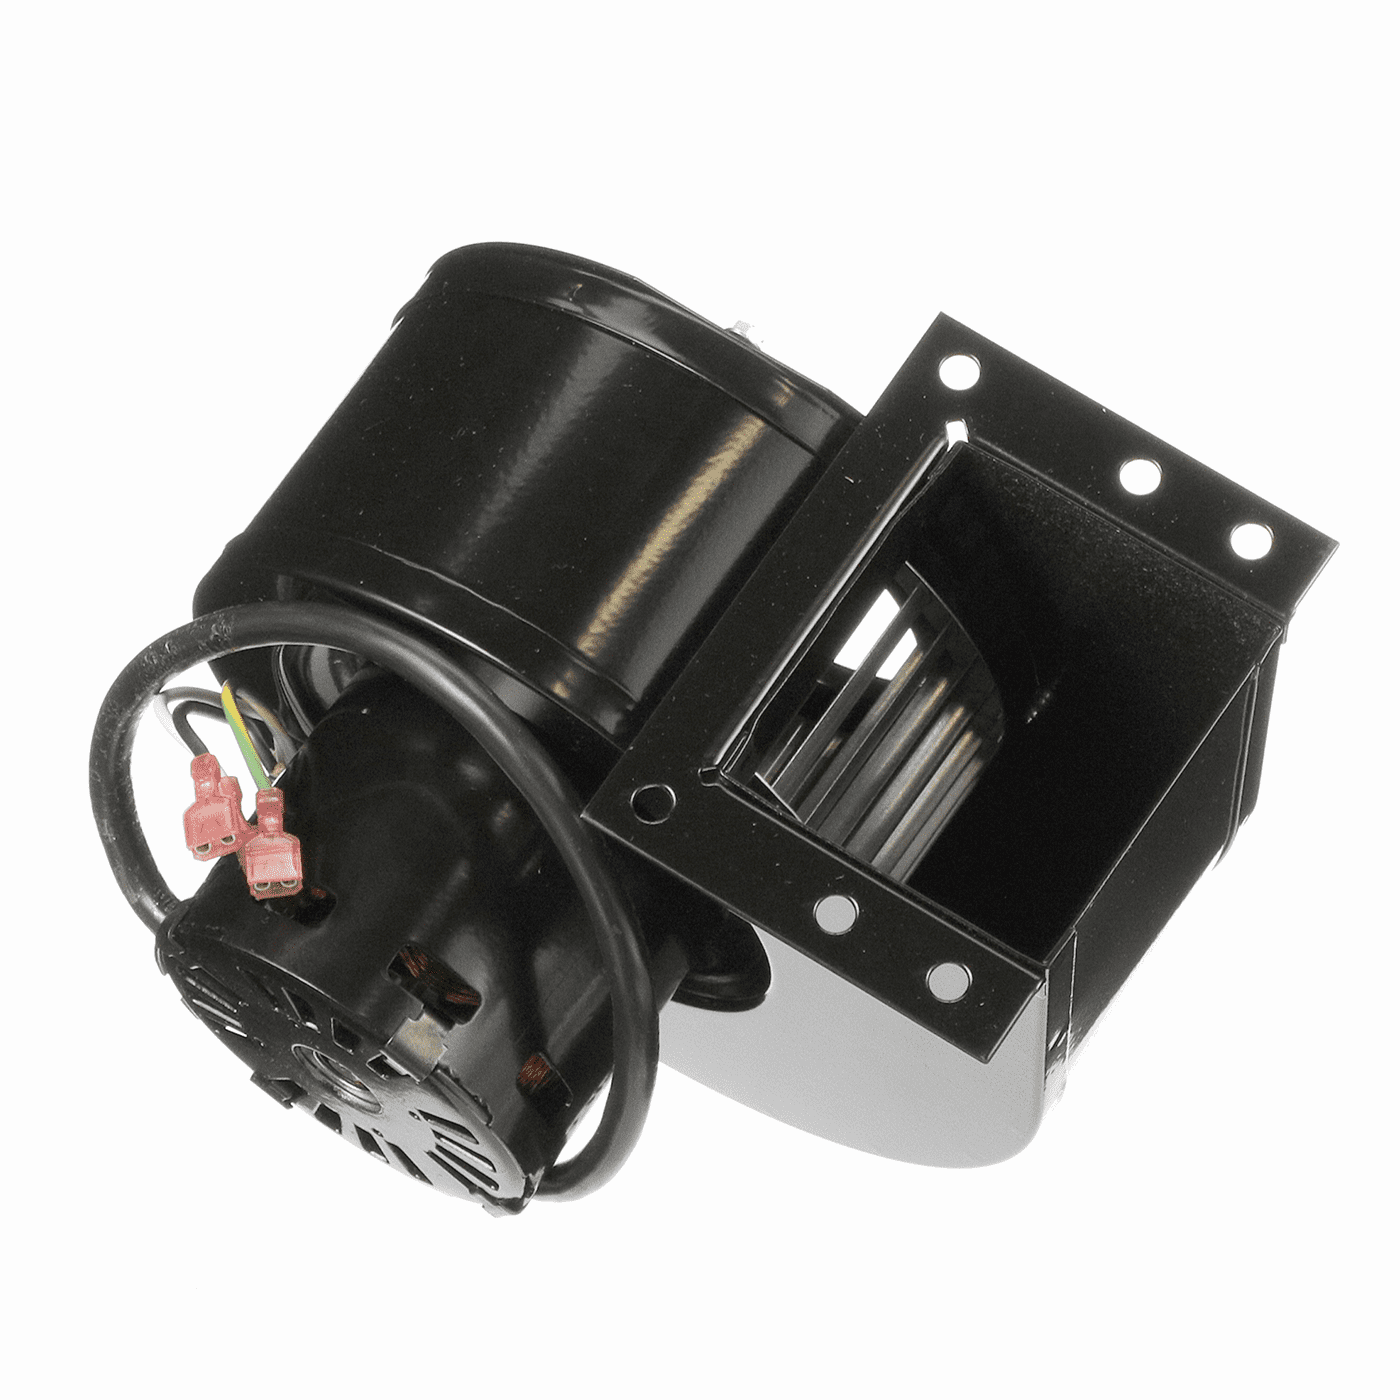 Harman Distribution Convection Room Air Blower, 3-21-33647